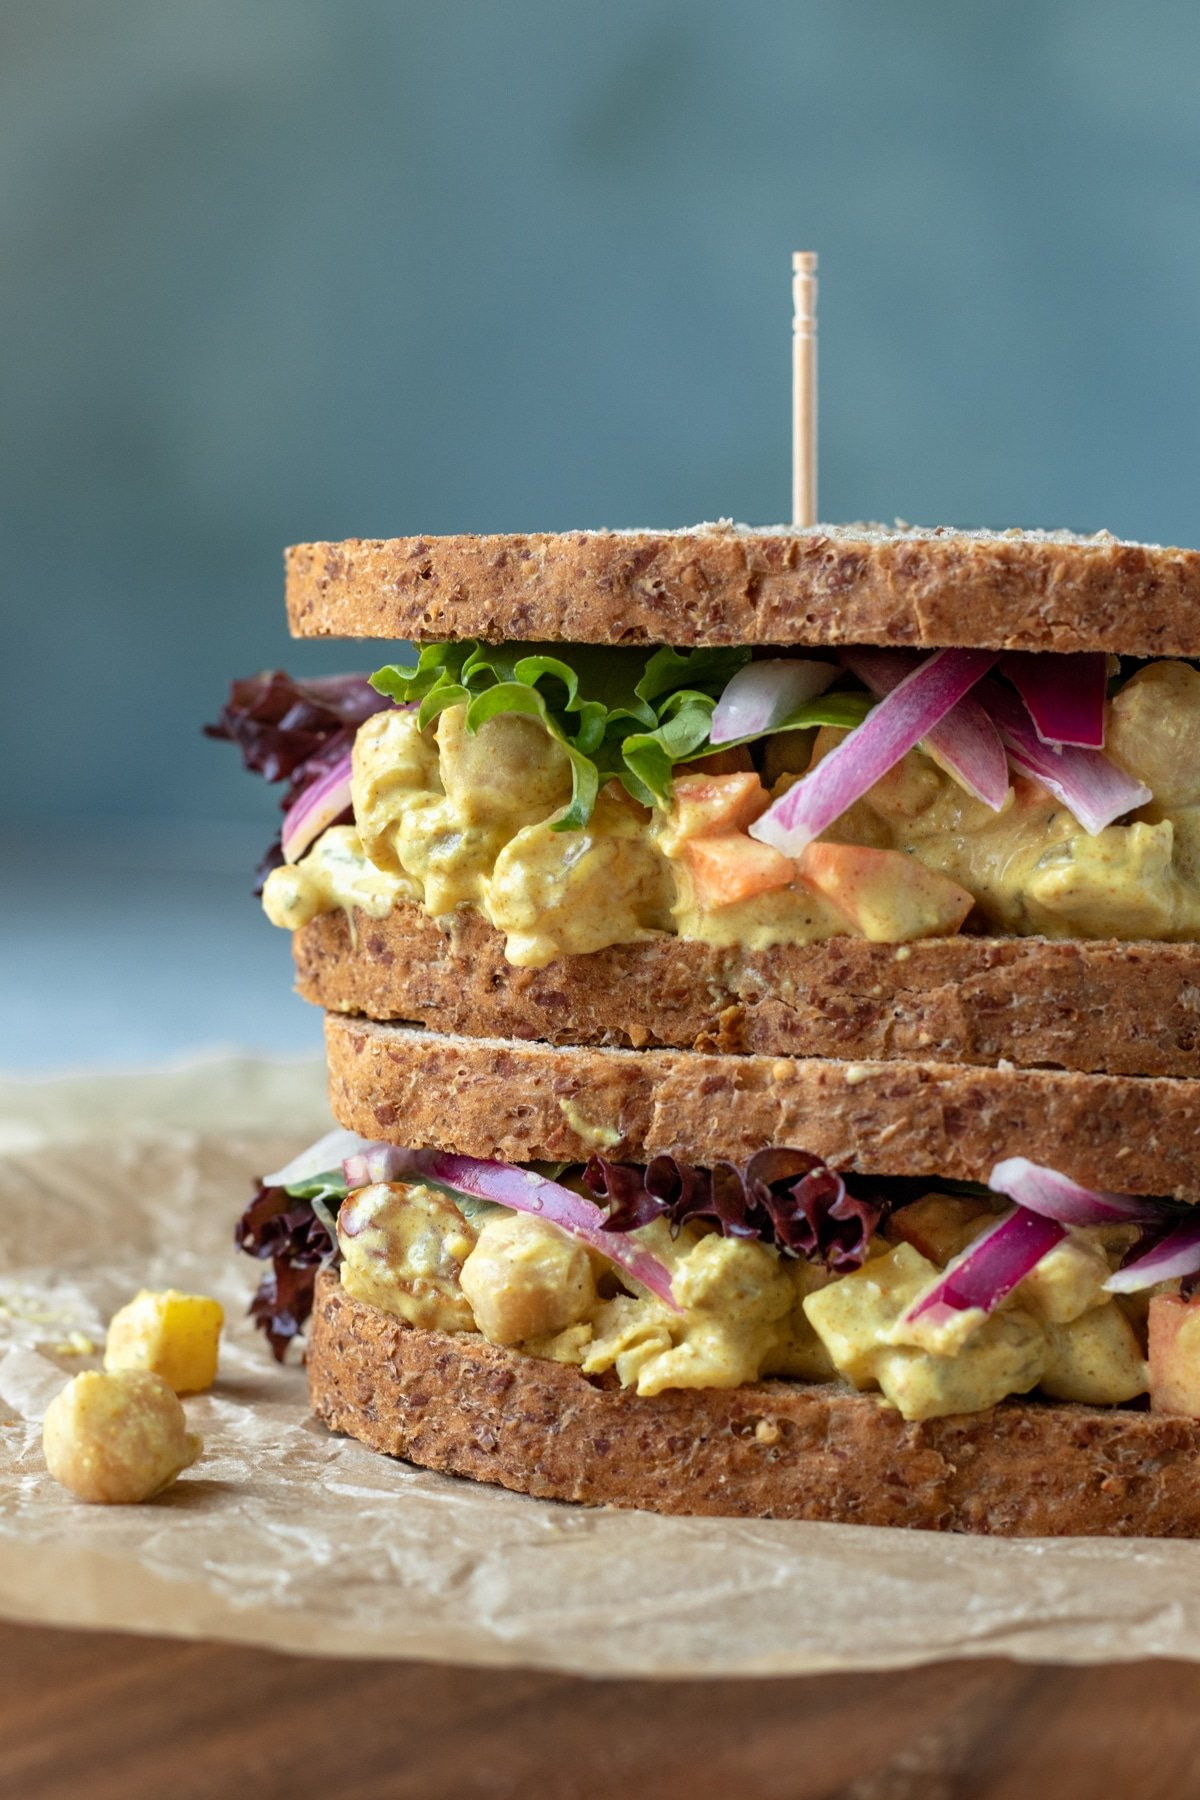 curried chickpea salad on whole-grain bread, two sandwiches stacked.